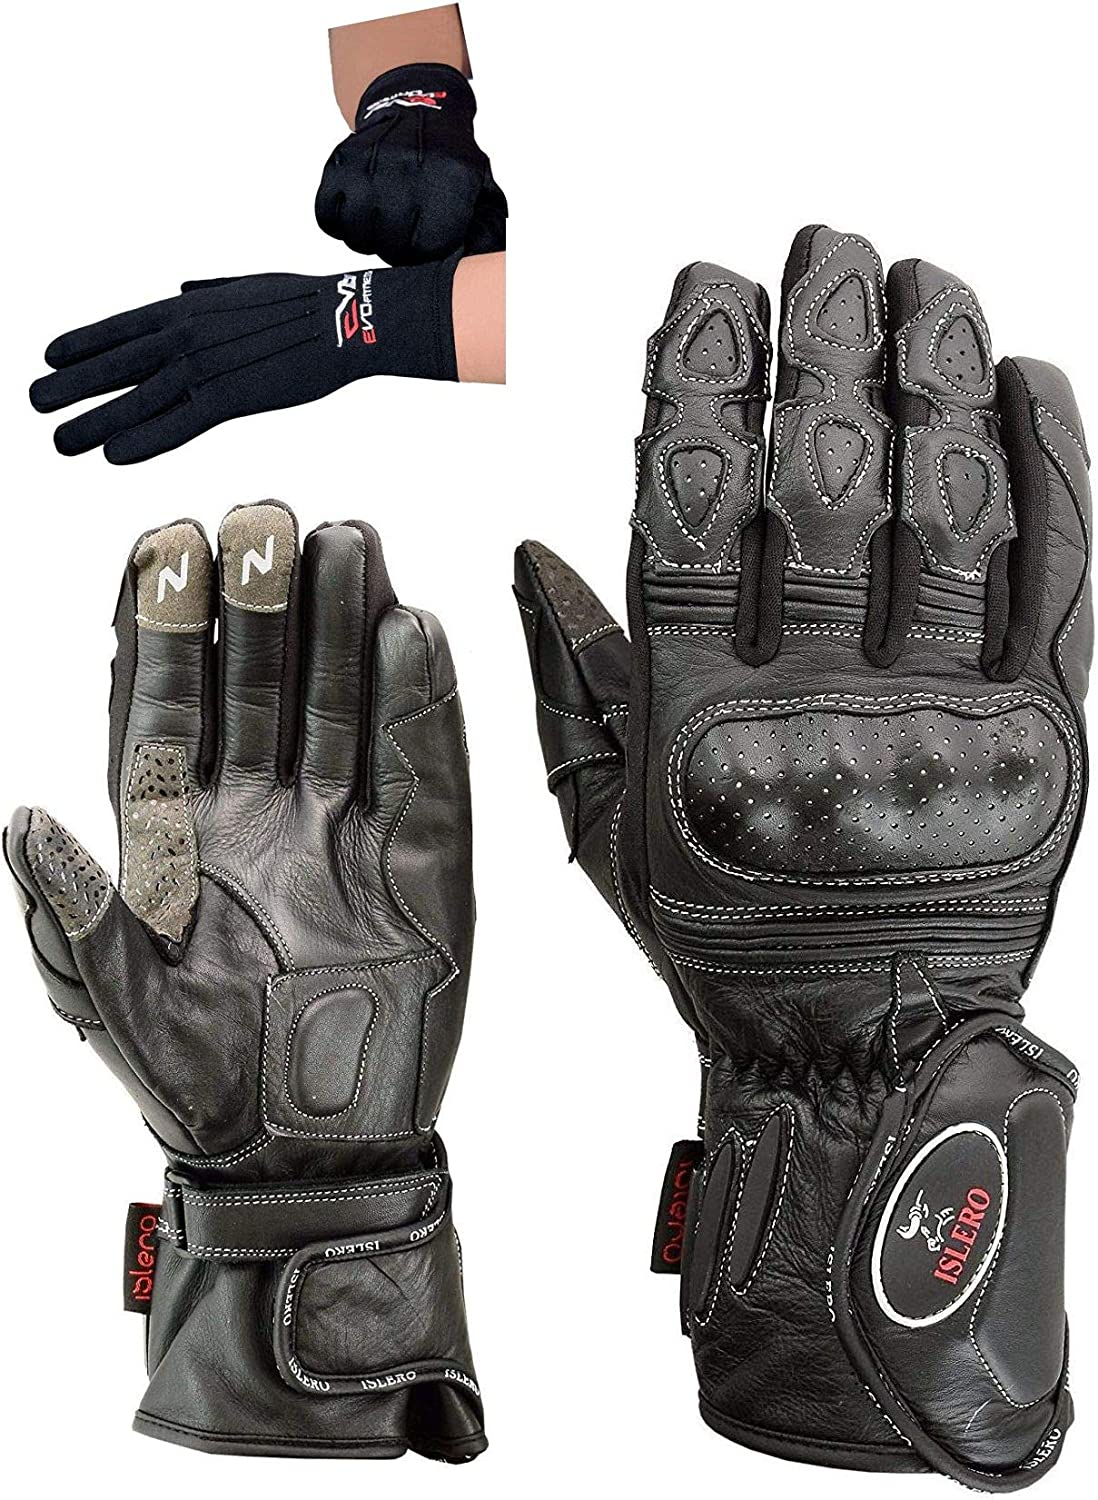 Bike It Motorcycle Motorbike Inner Gloves Thermal Water Resistant Winter New